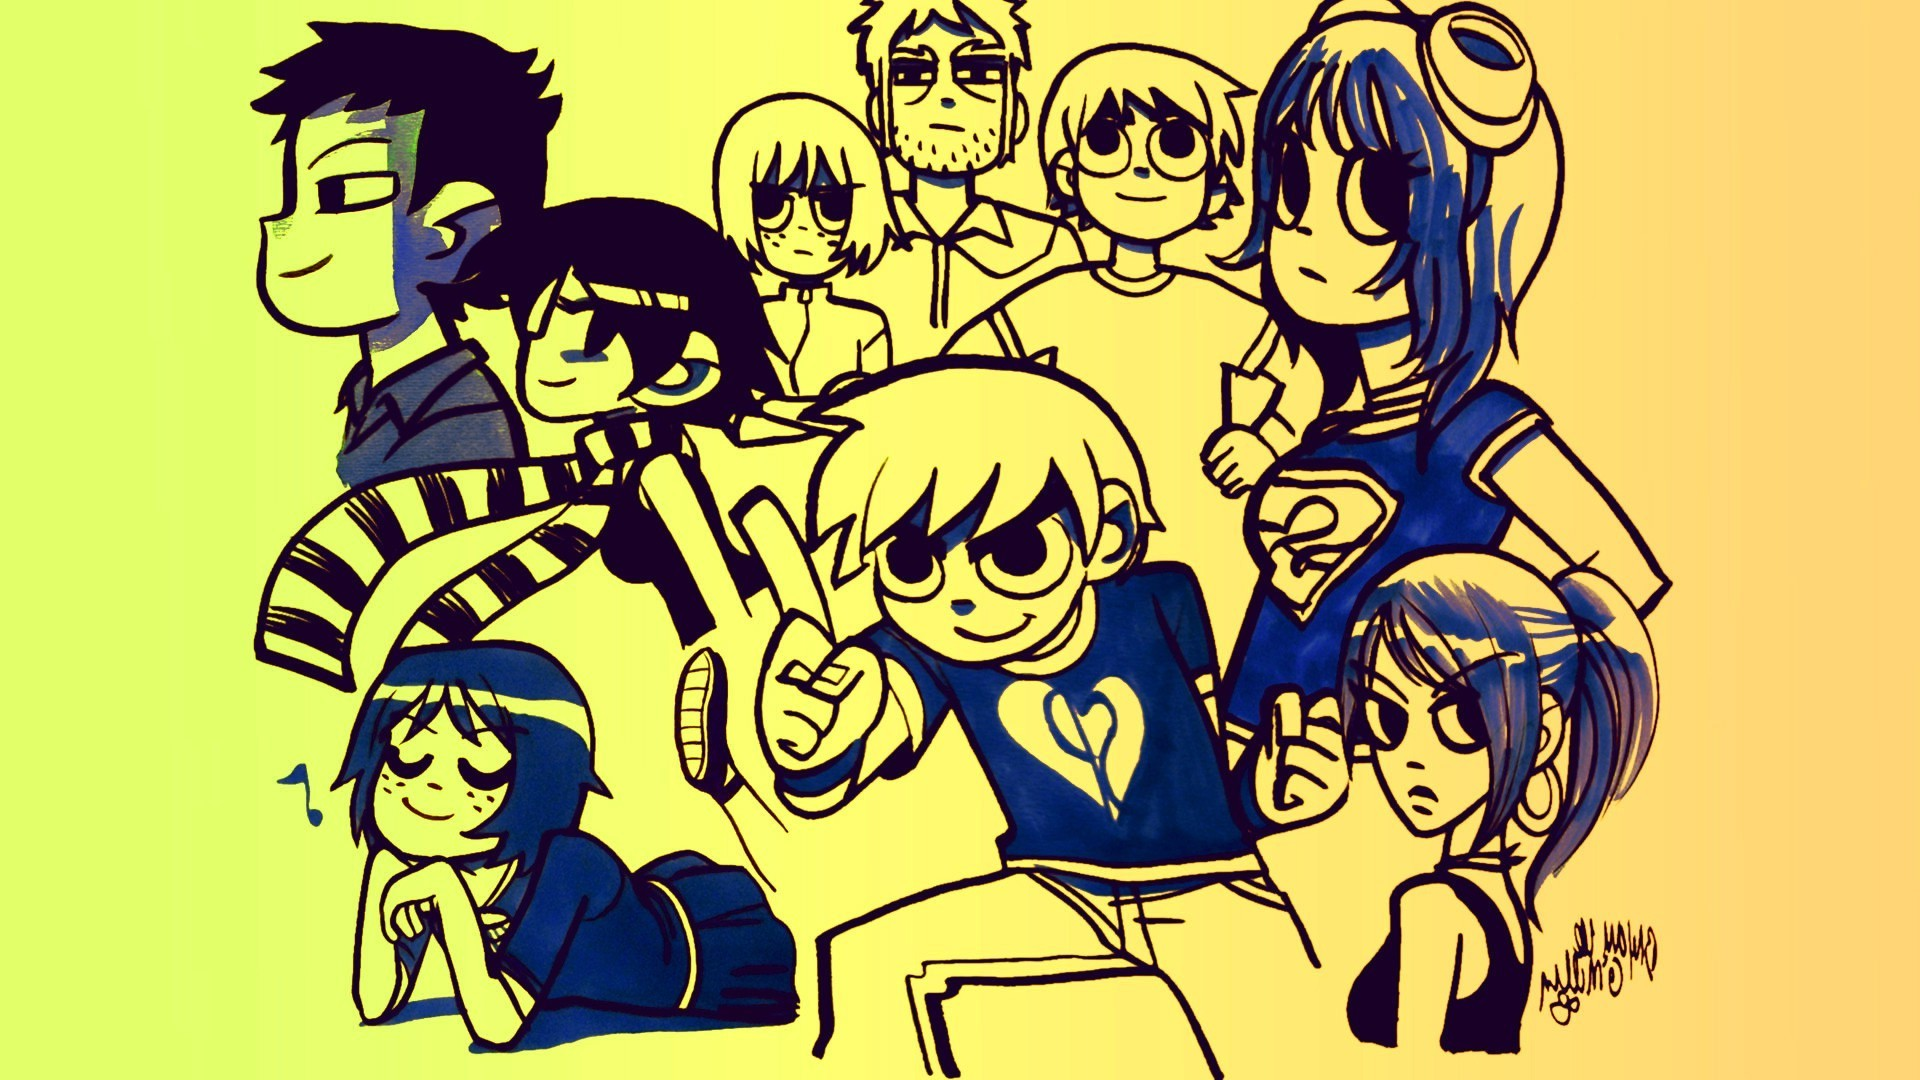 1920x1080 Scott Pilgrim Vs. The World, Scott Pilgrim, Comics, Graphic Novels .